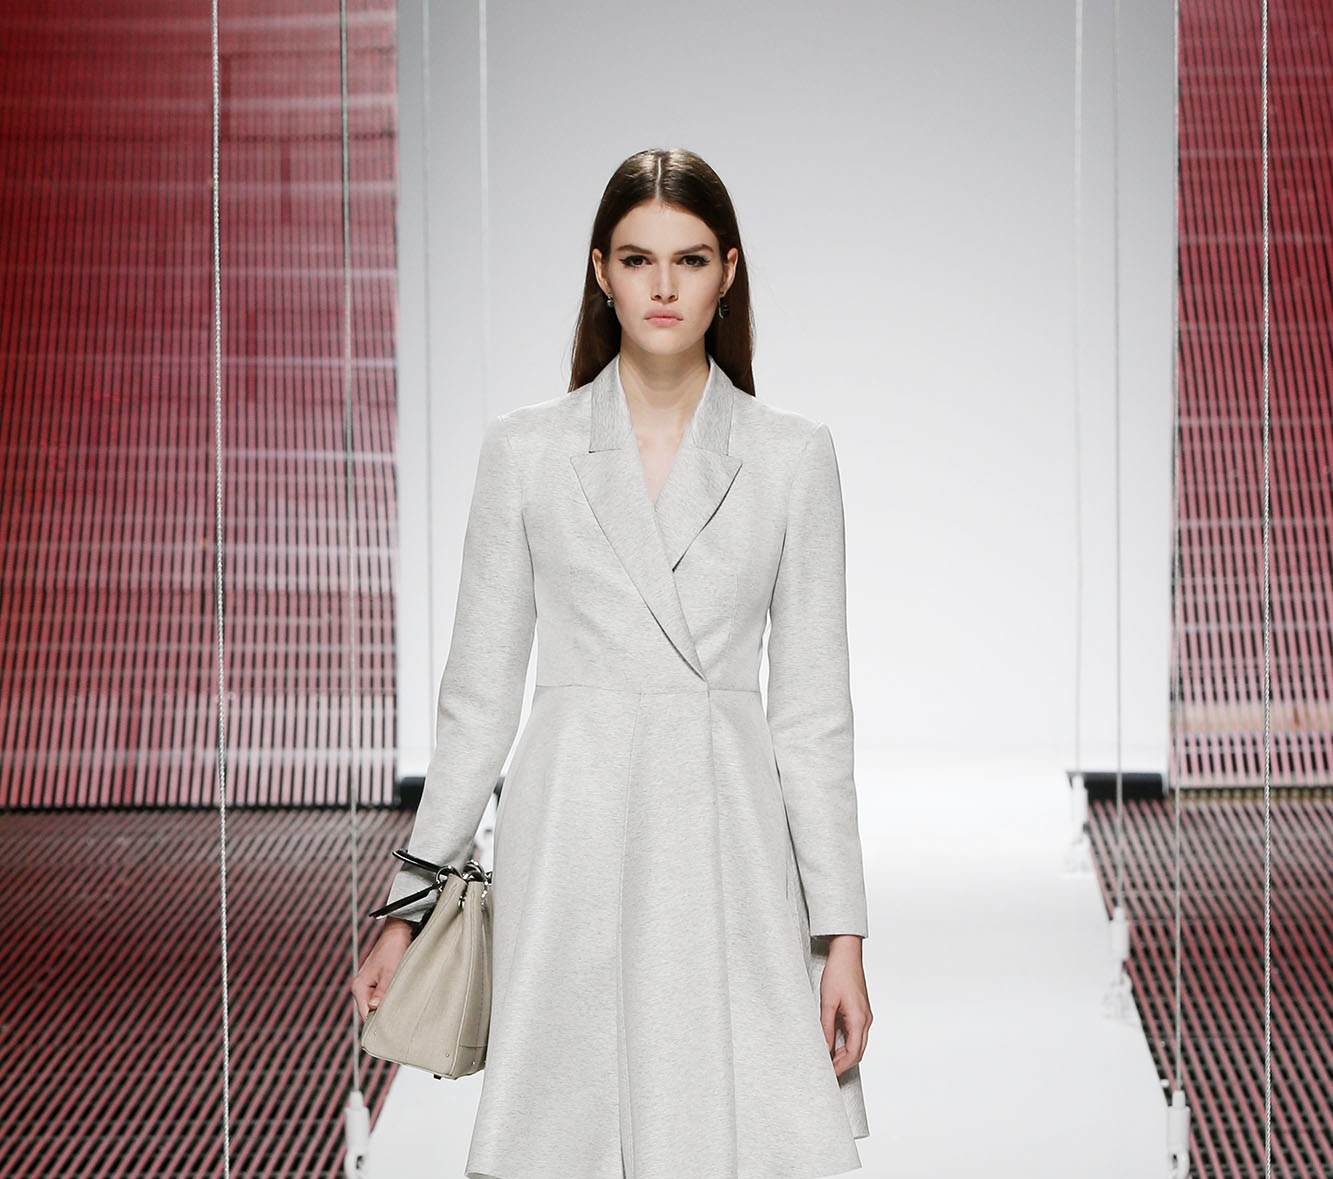 christian-dior-fall-winter-cruise-collection (7)